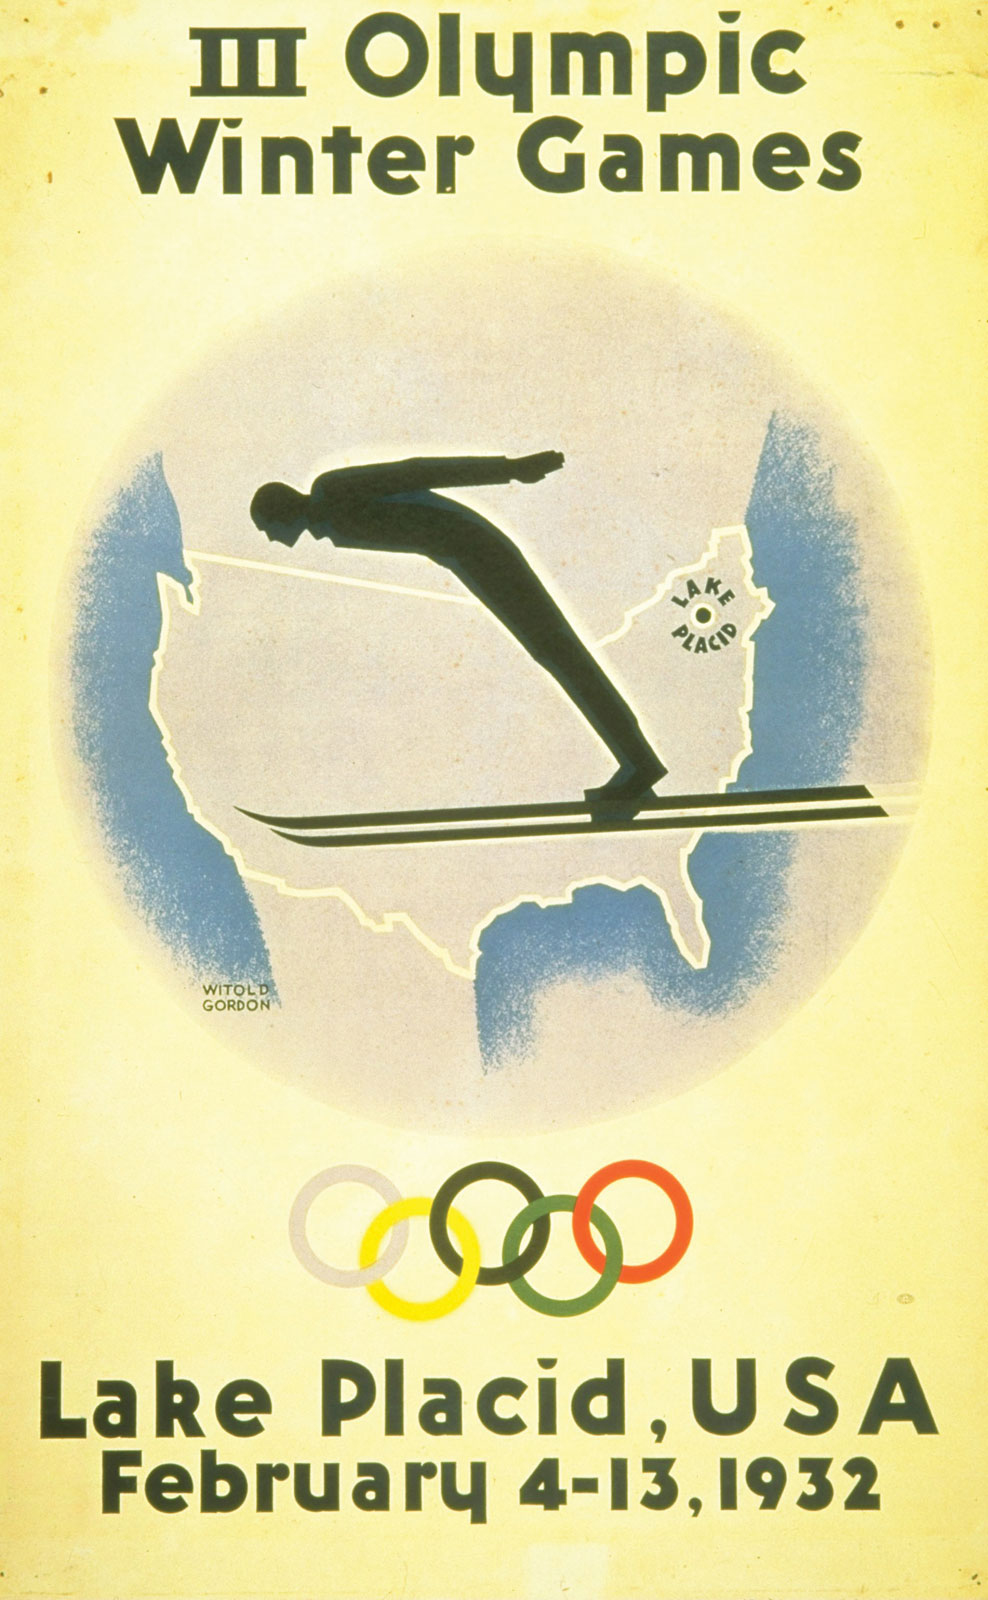 Winter Olympics Posters Through the Ages: 1932_w1.jpg